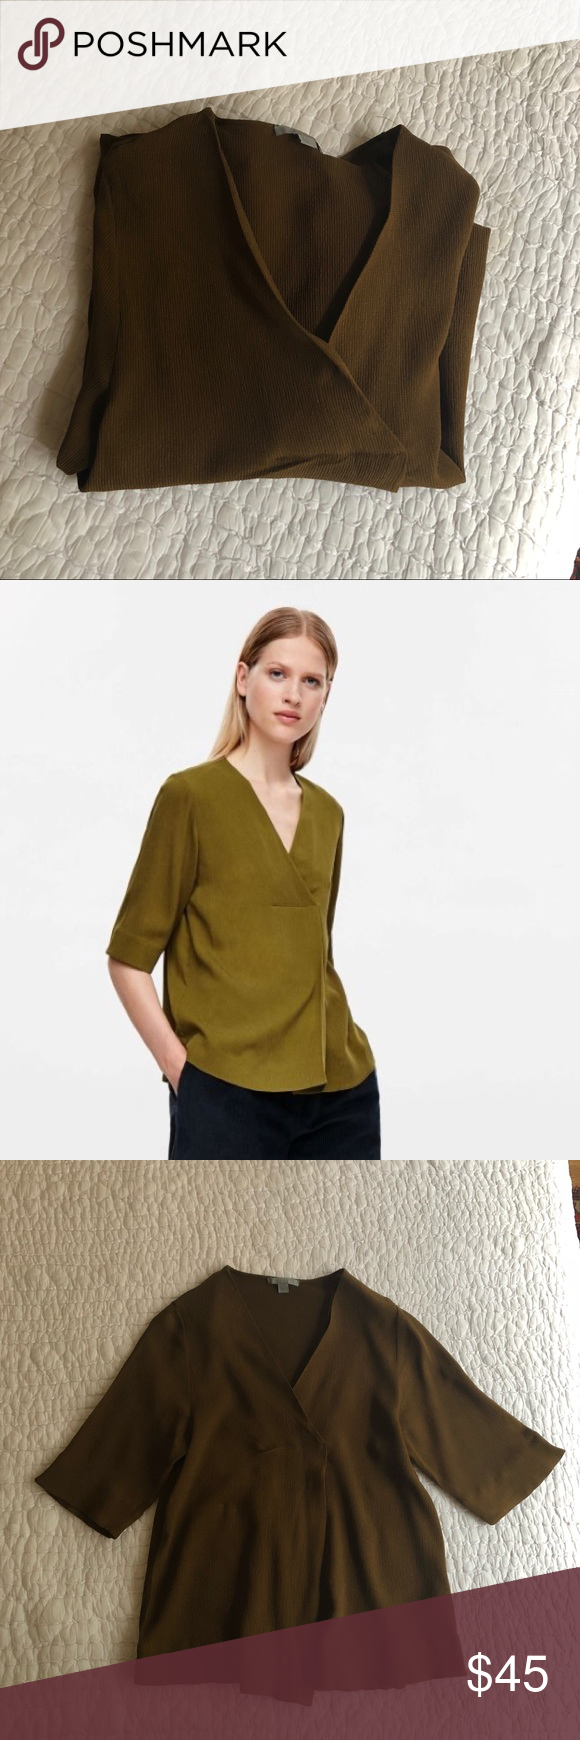 0bbfaed3e92b Cos Crossover Top V-neck top in the most beautiful shade of dark mustard  yellow! 100% cupro. Dry clean only. Size 4 but could also fit a size 2.